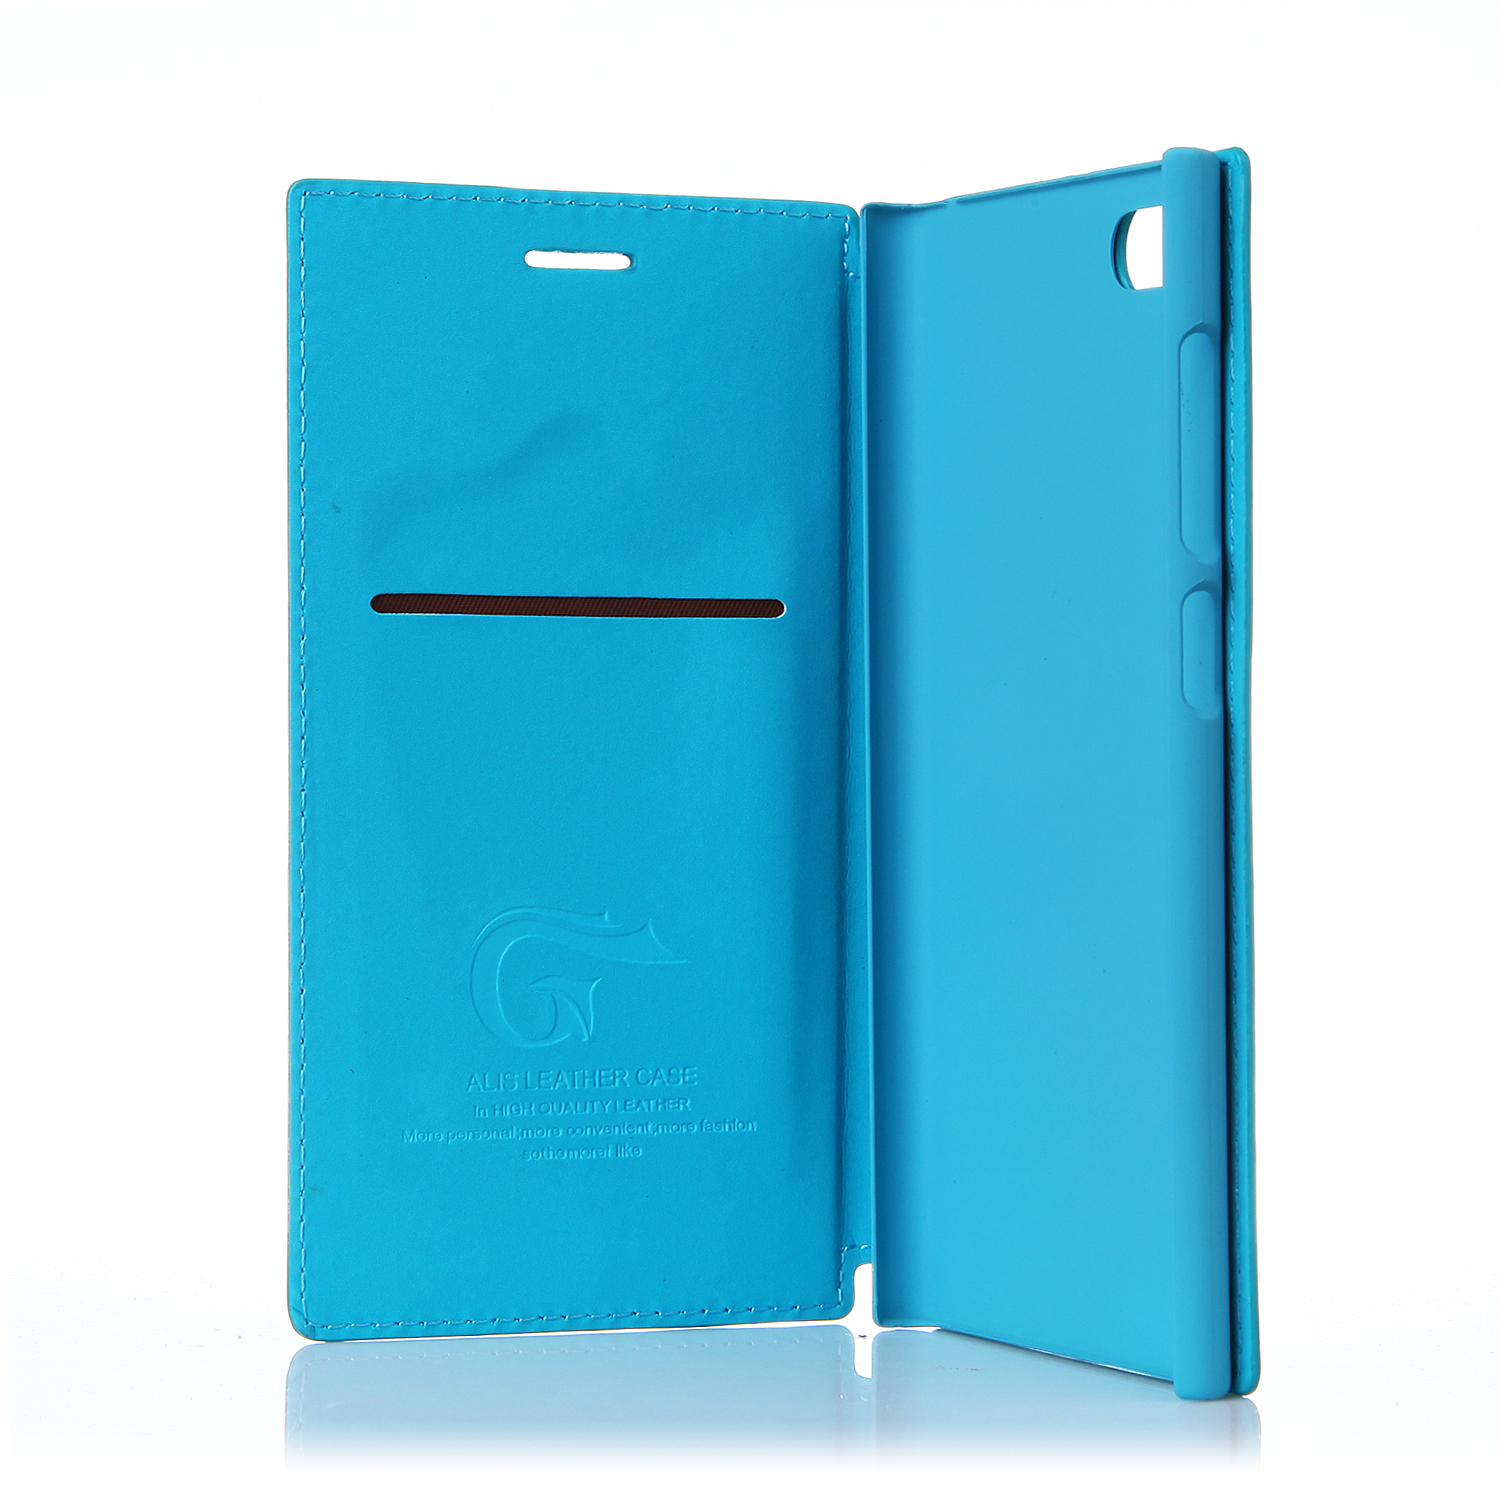 Leather Flip Cover Stand Case for XIAOMI MI3 Smartphone Blue